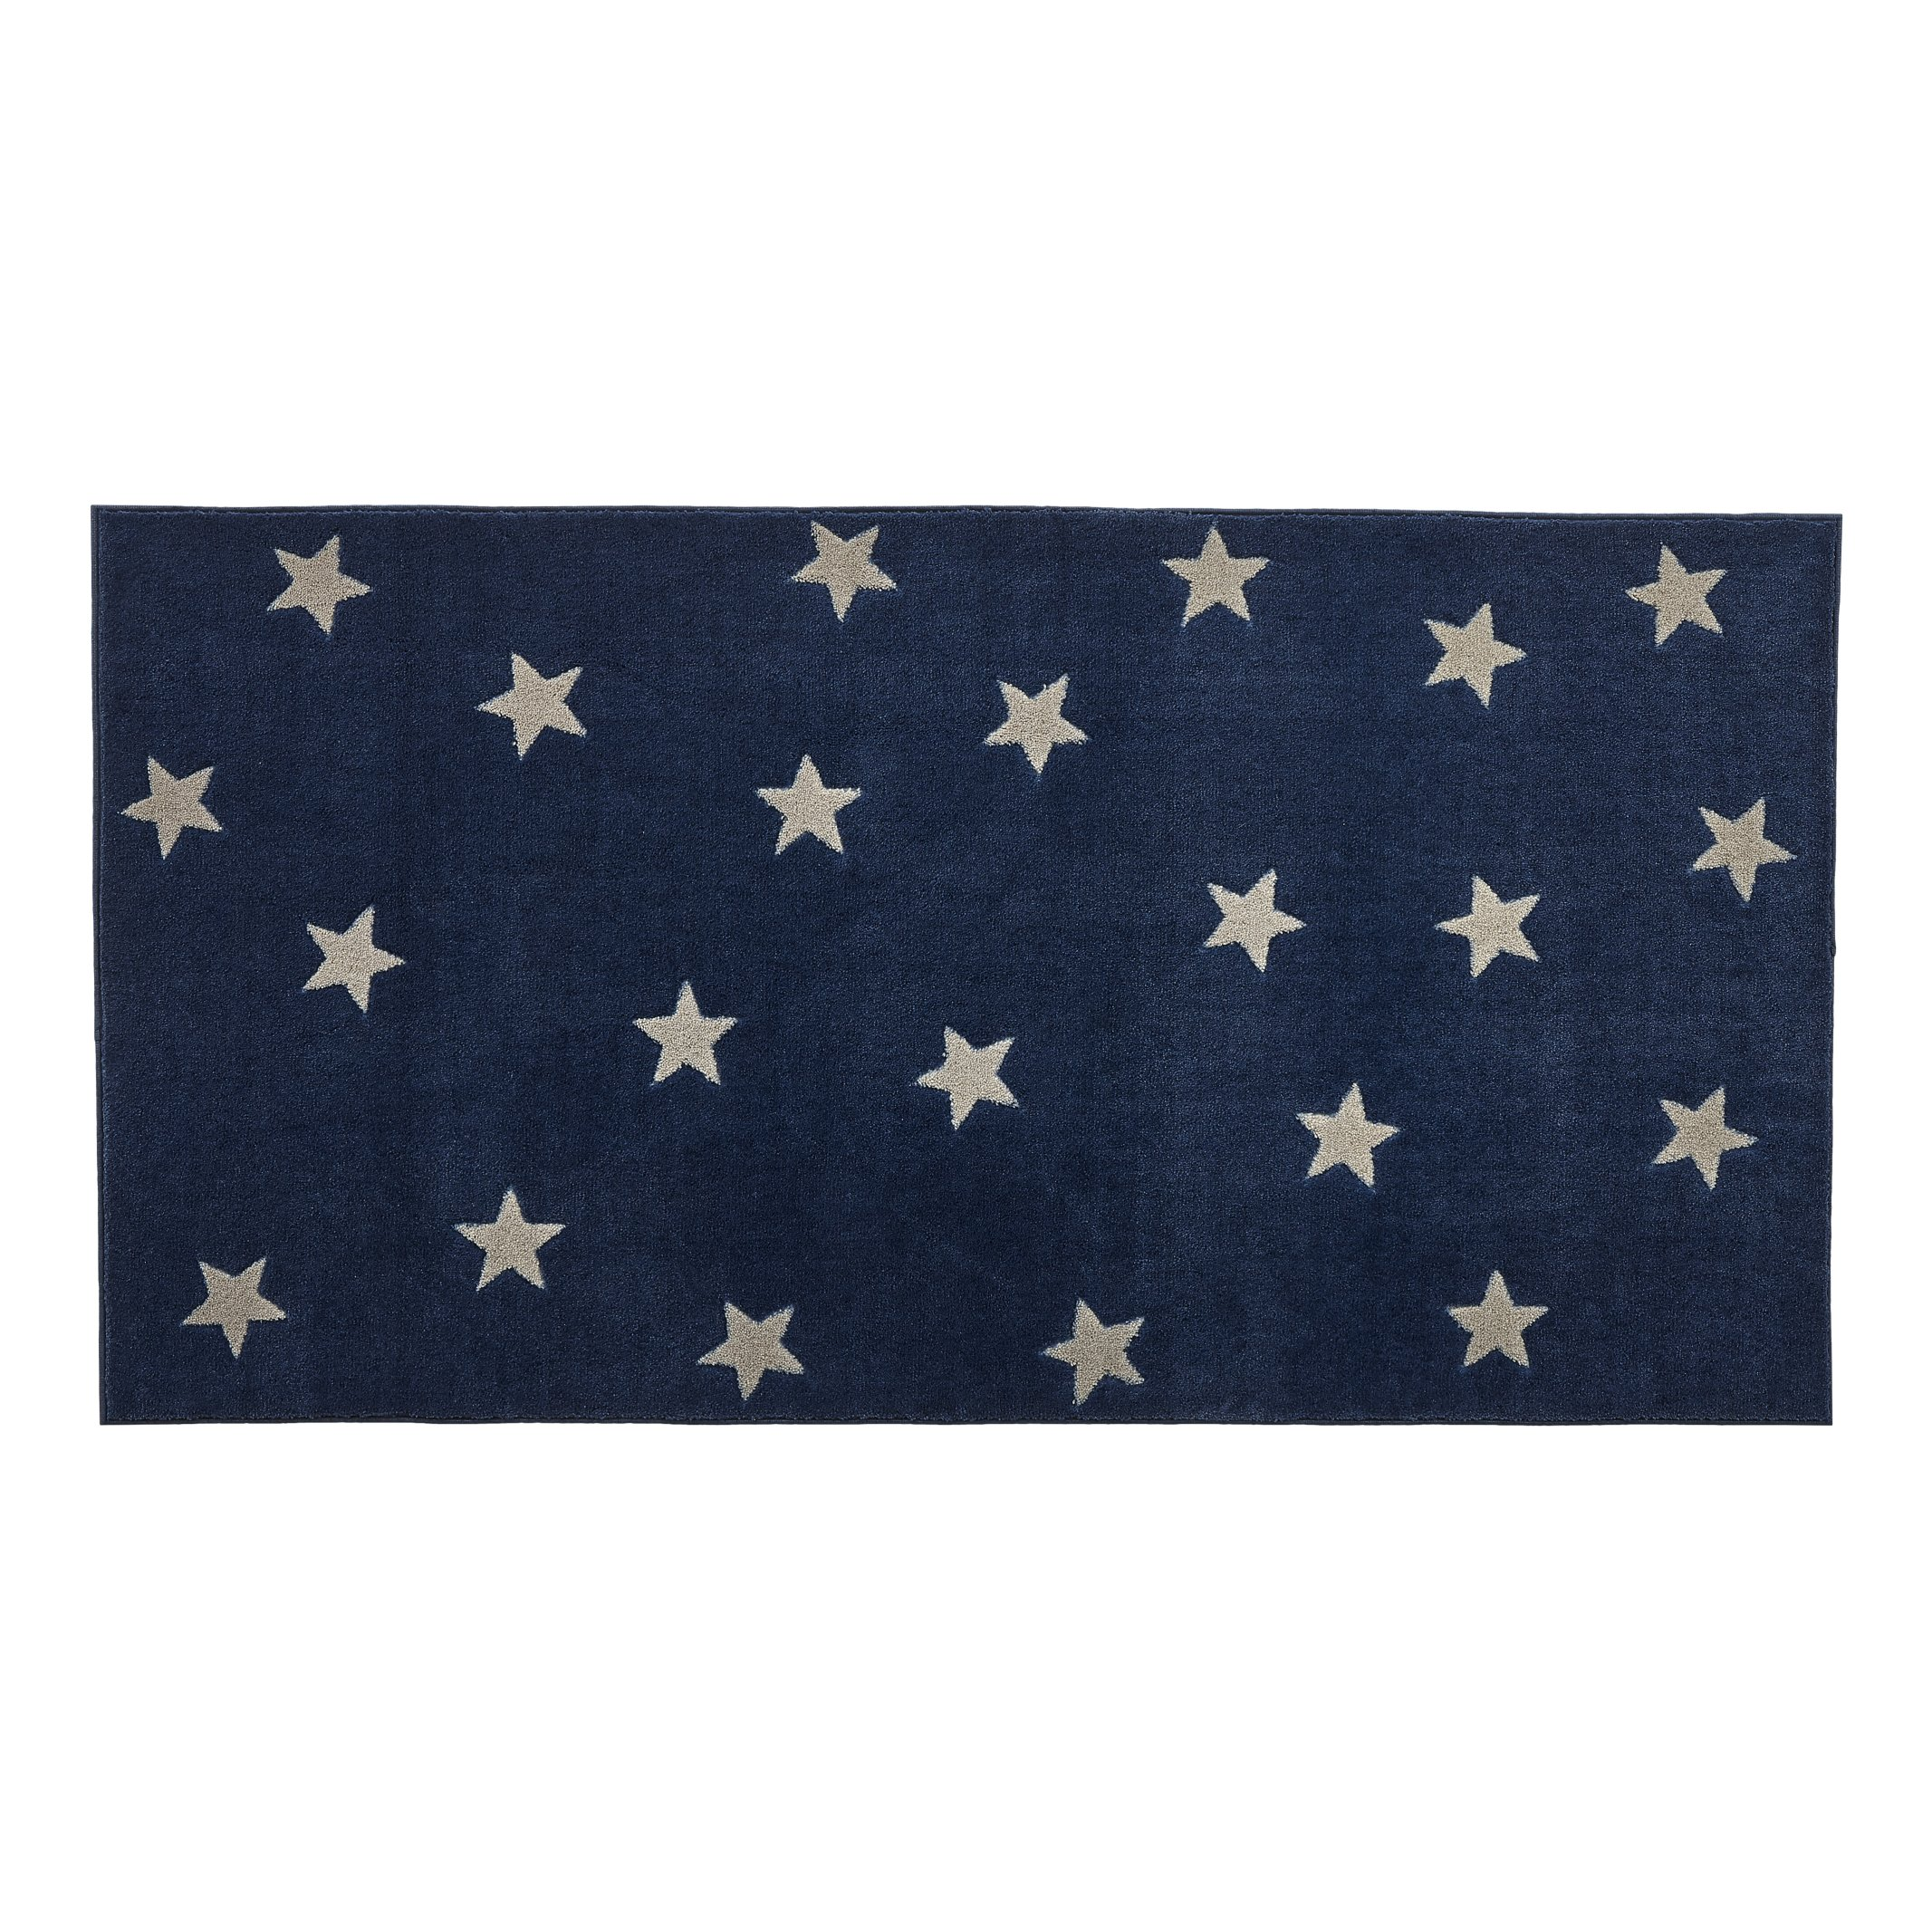 Galaxy Star Rug - Navy by Lifetime Kidsrooms